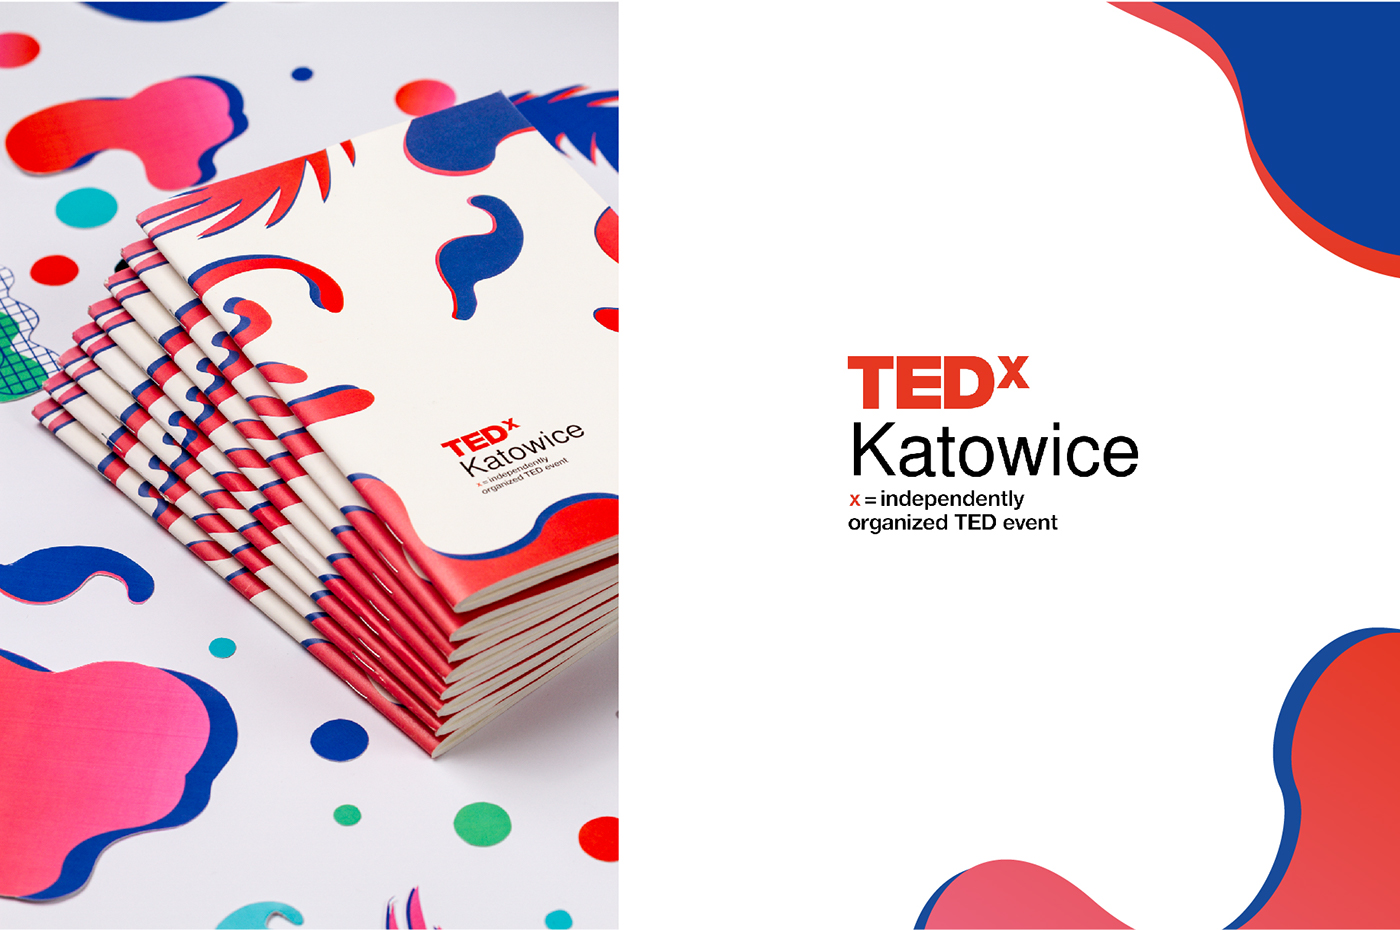 TEDx katowice TED scenography plants conference paper waste cubic kato package